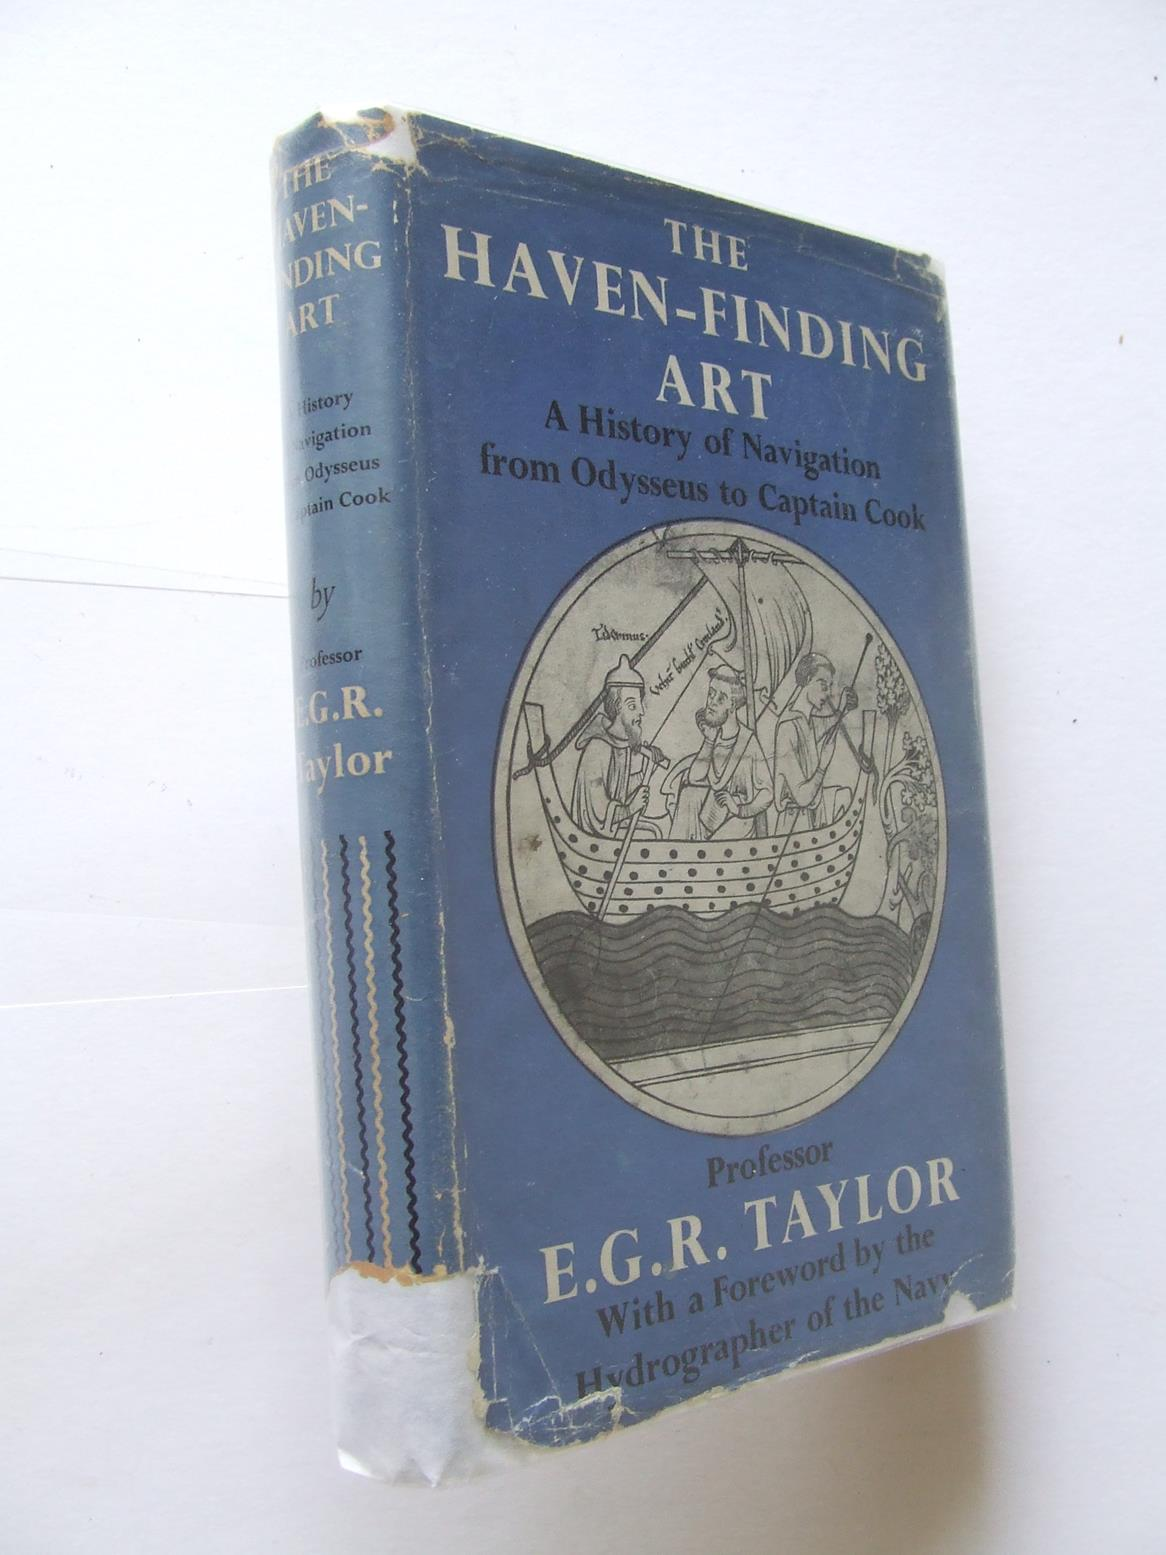 The Haven-Finding Art, A History of Navigation from Odysseus to Captain Cook